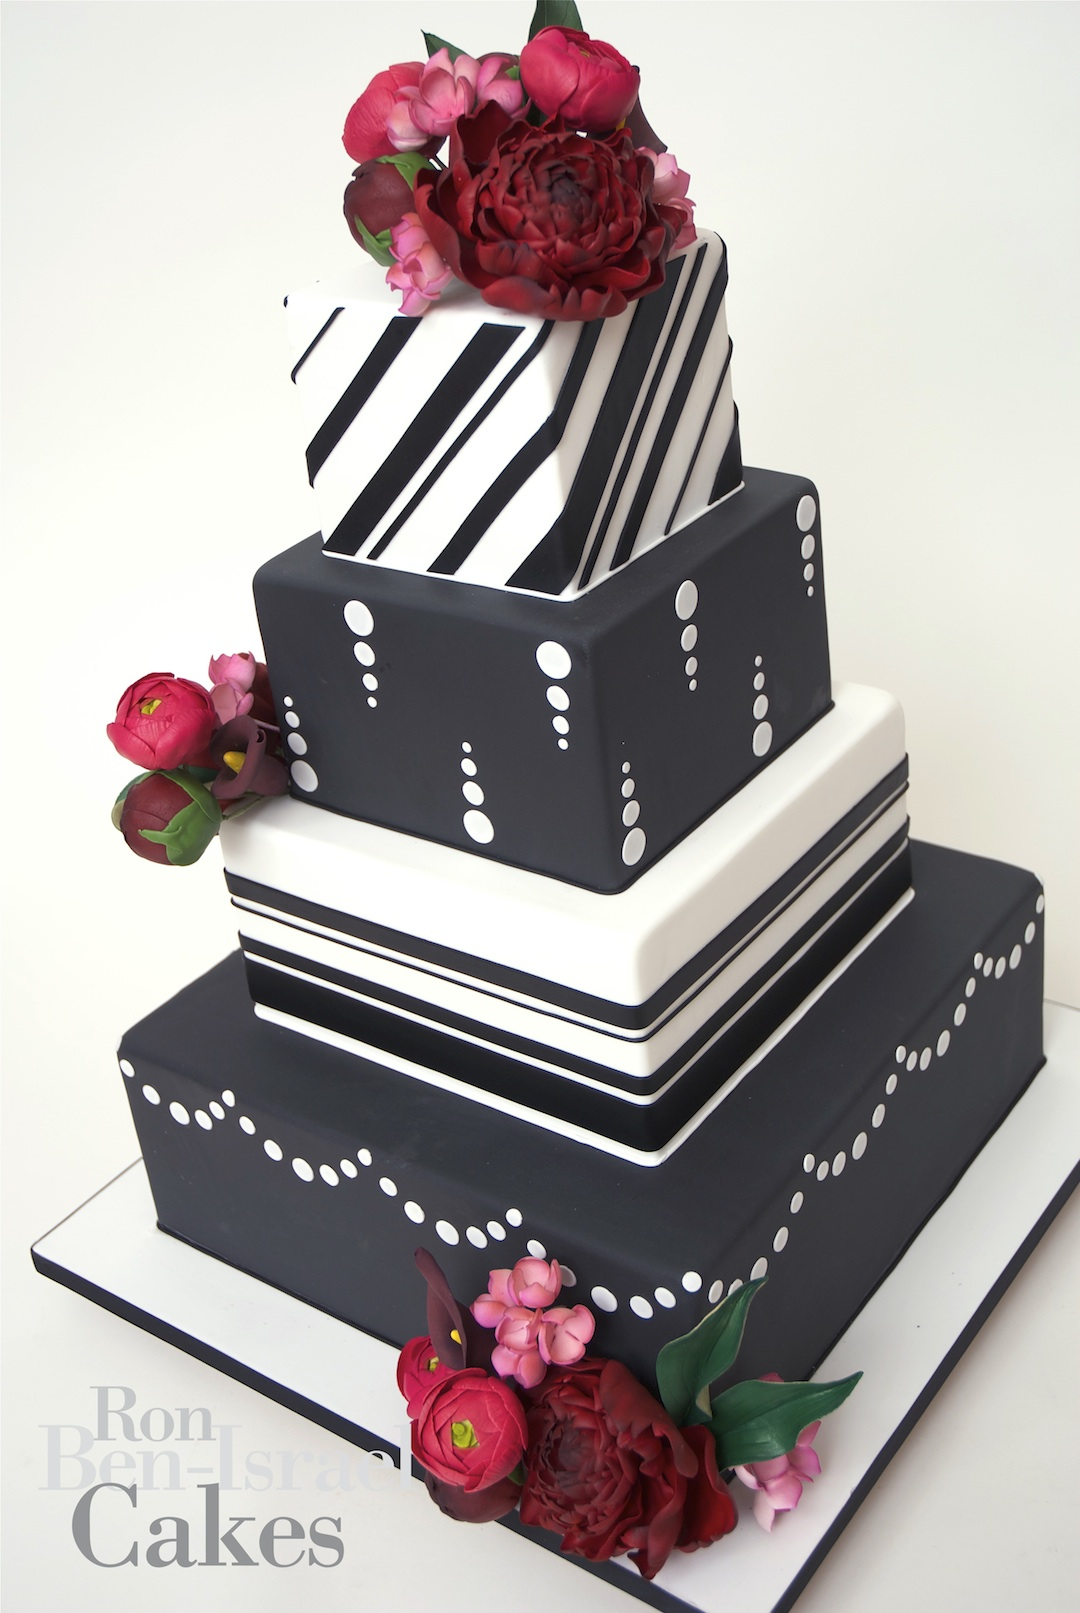 Wedding-cake-inspiration-ron-ben-isreal-wedding-cakes-black-white-red.original